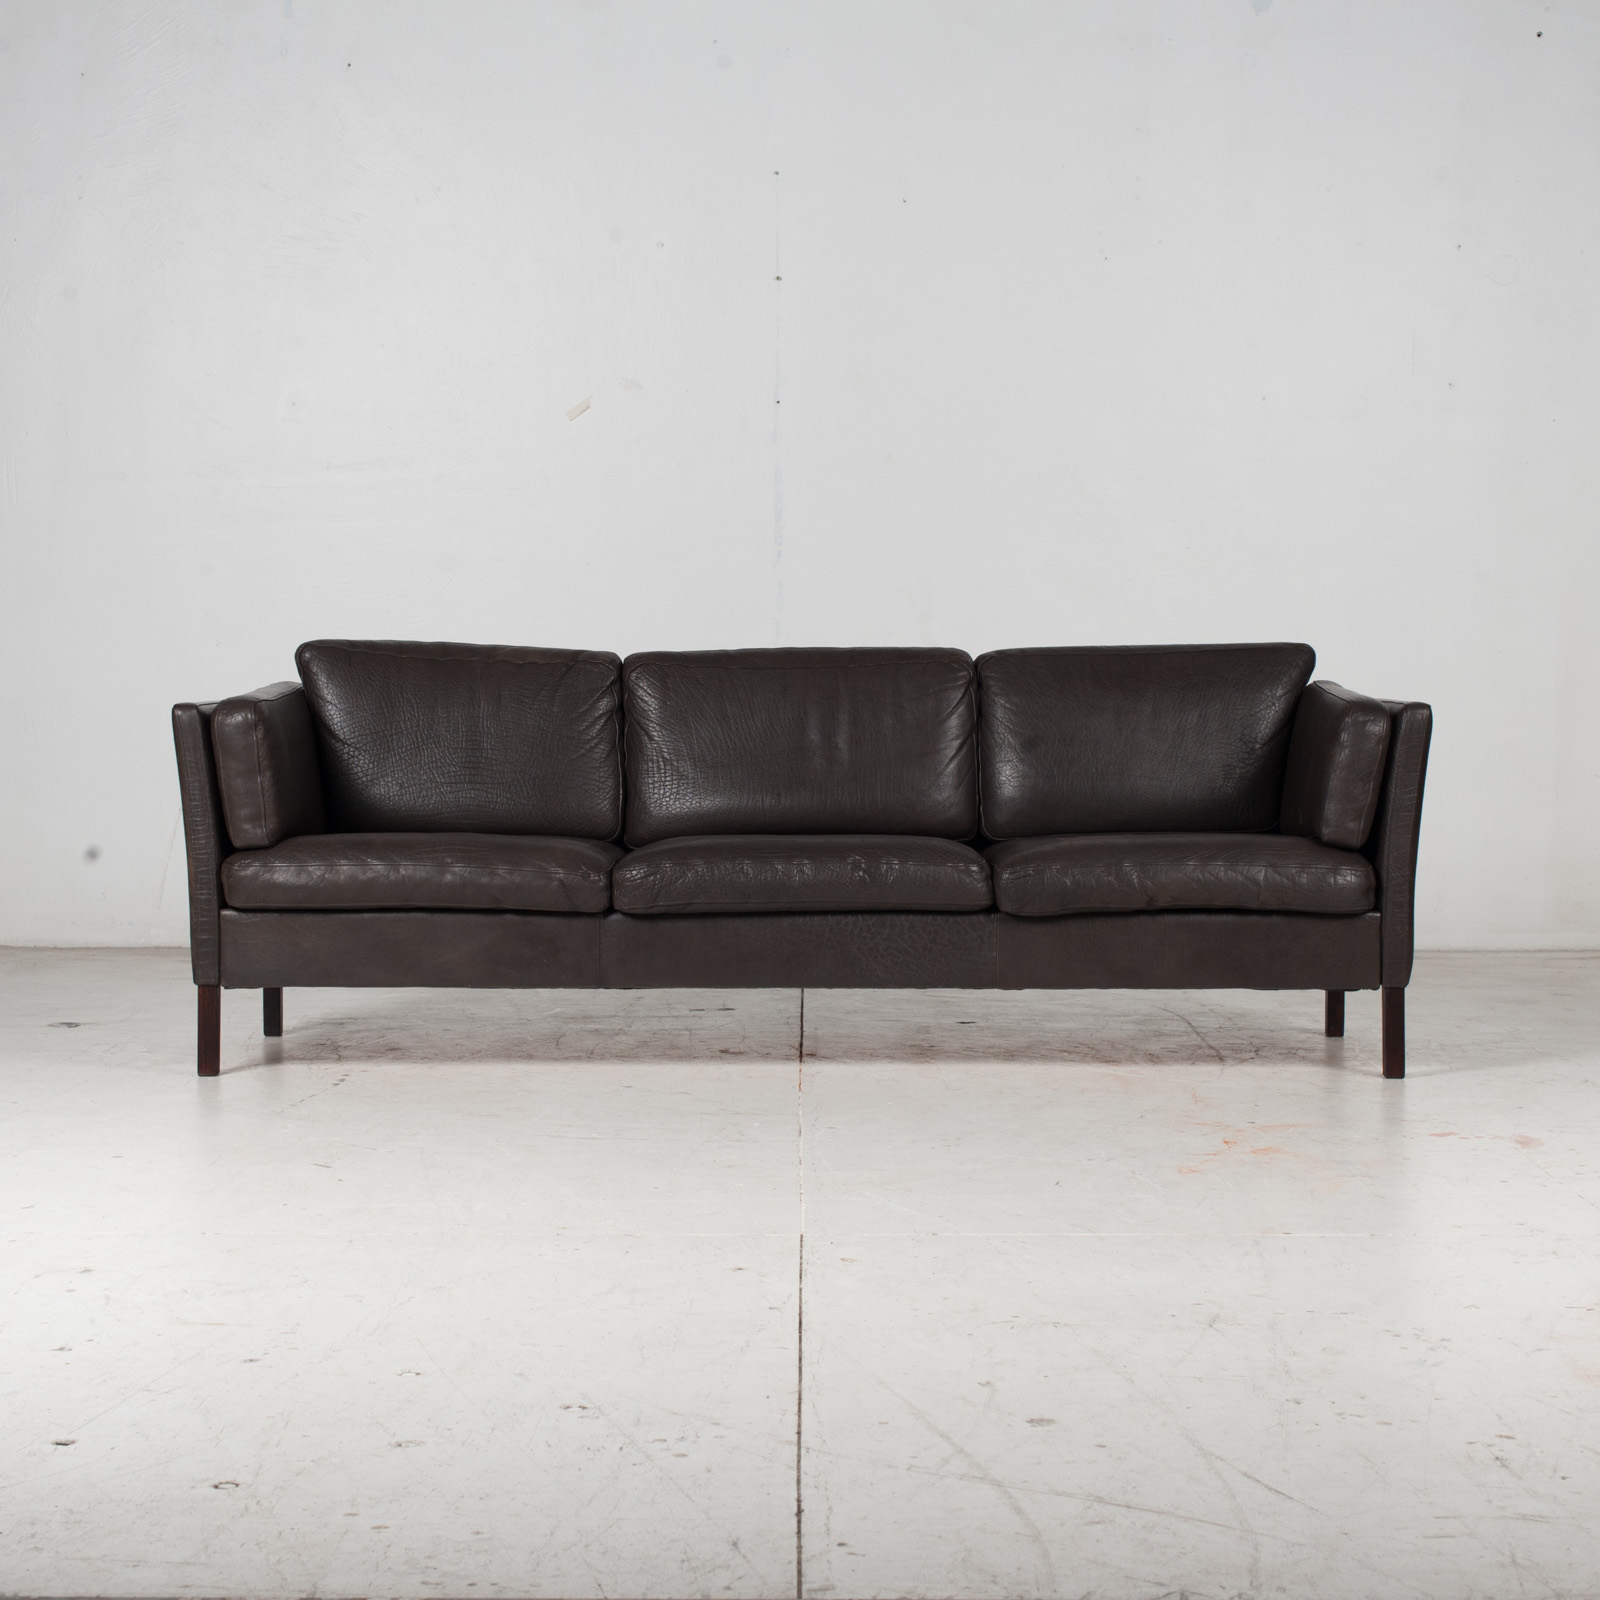 3 Seat Sofa In Dark Brown Leather, 1960s, Denmark 1